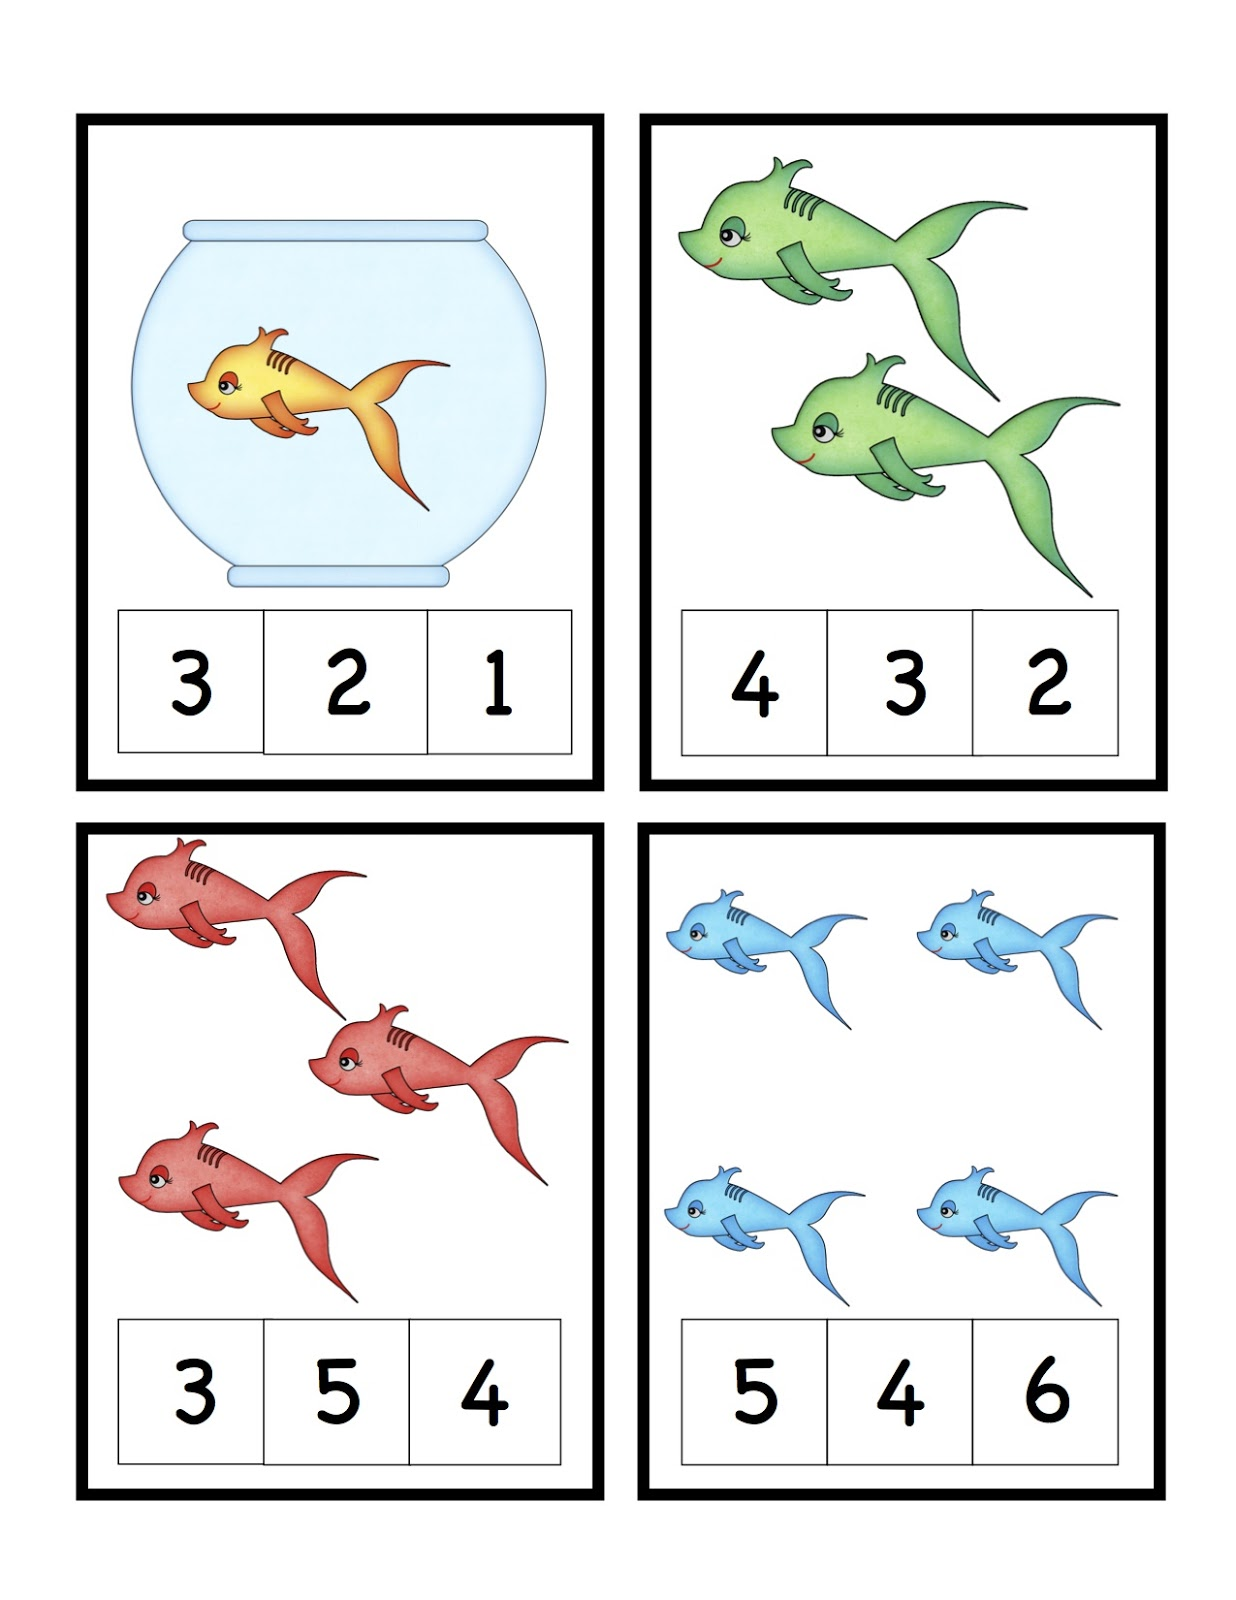 Fish Pattern Cards Template 2 1 236 1 600 Pixels